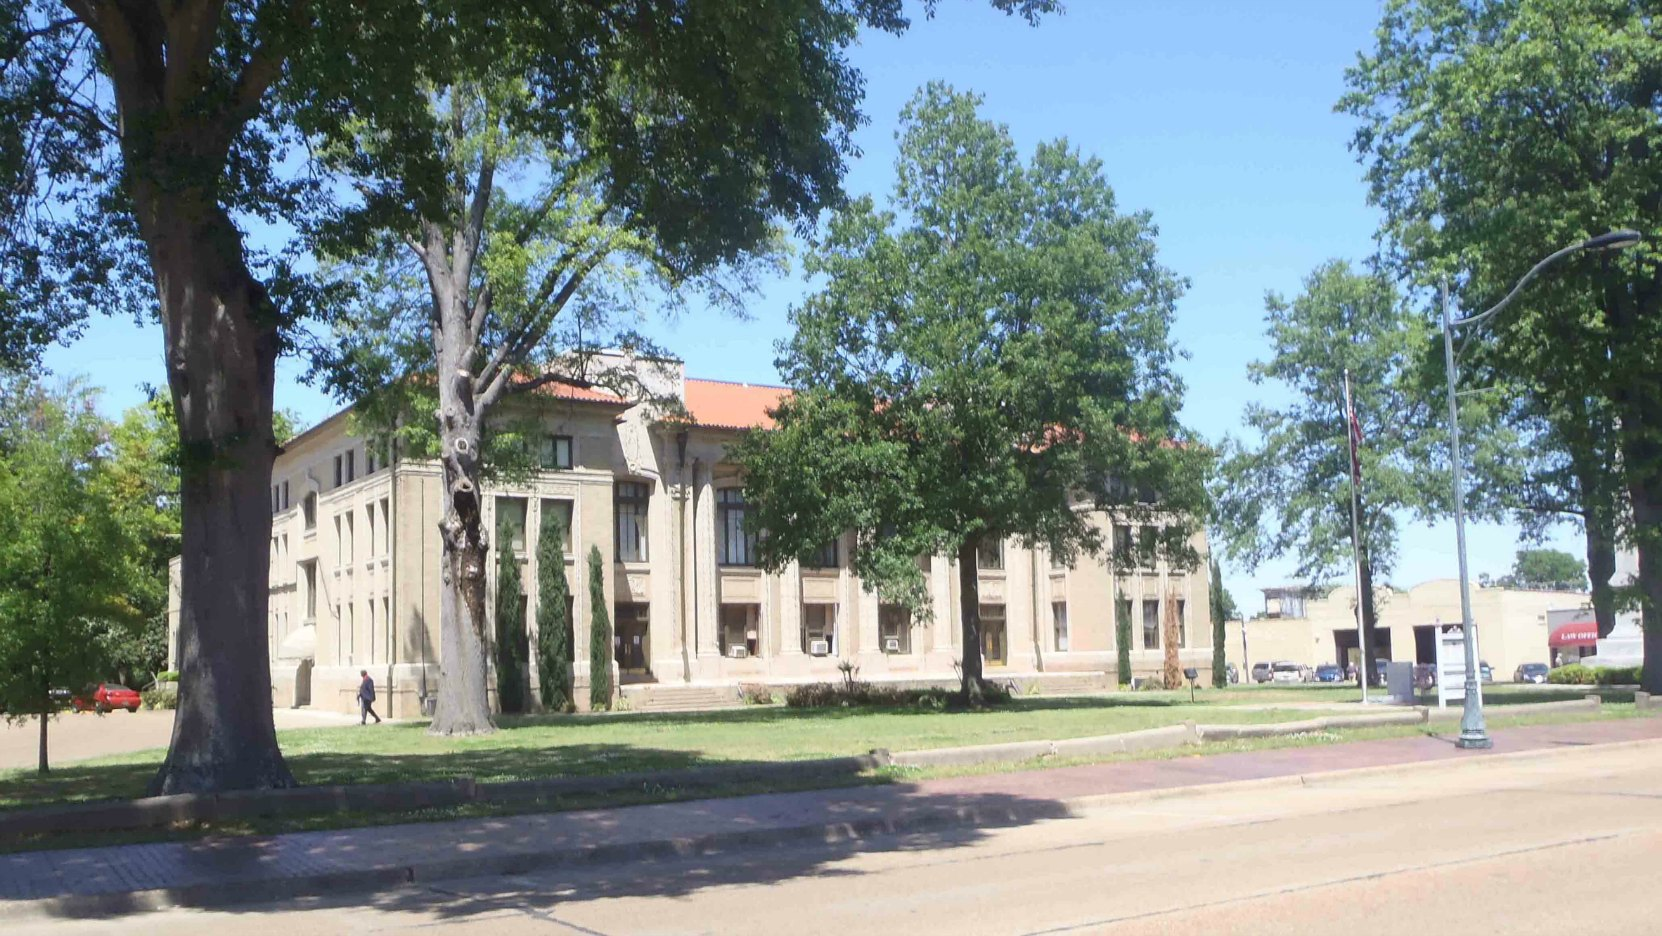 The Bolivar County Courthouse now stands on the site of W.C. Handy's Enlightenment About The Blues